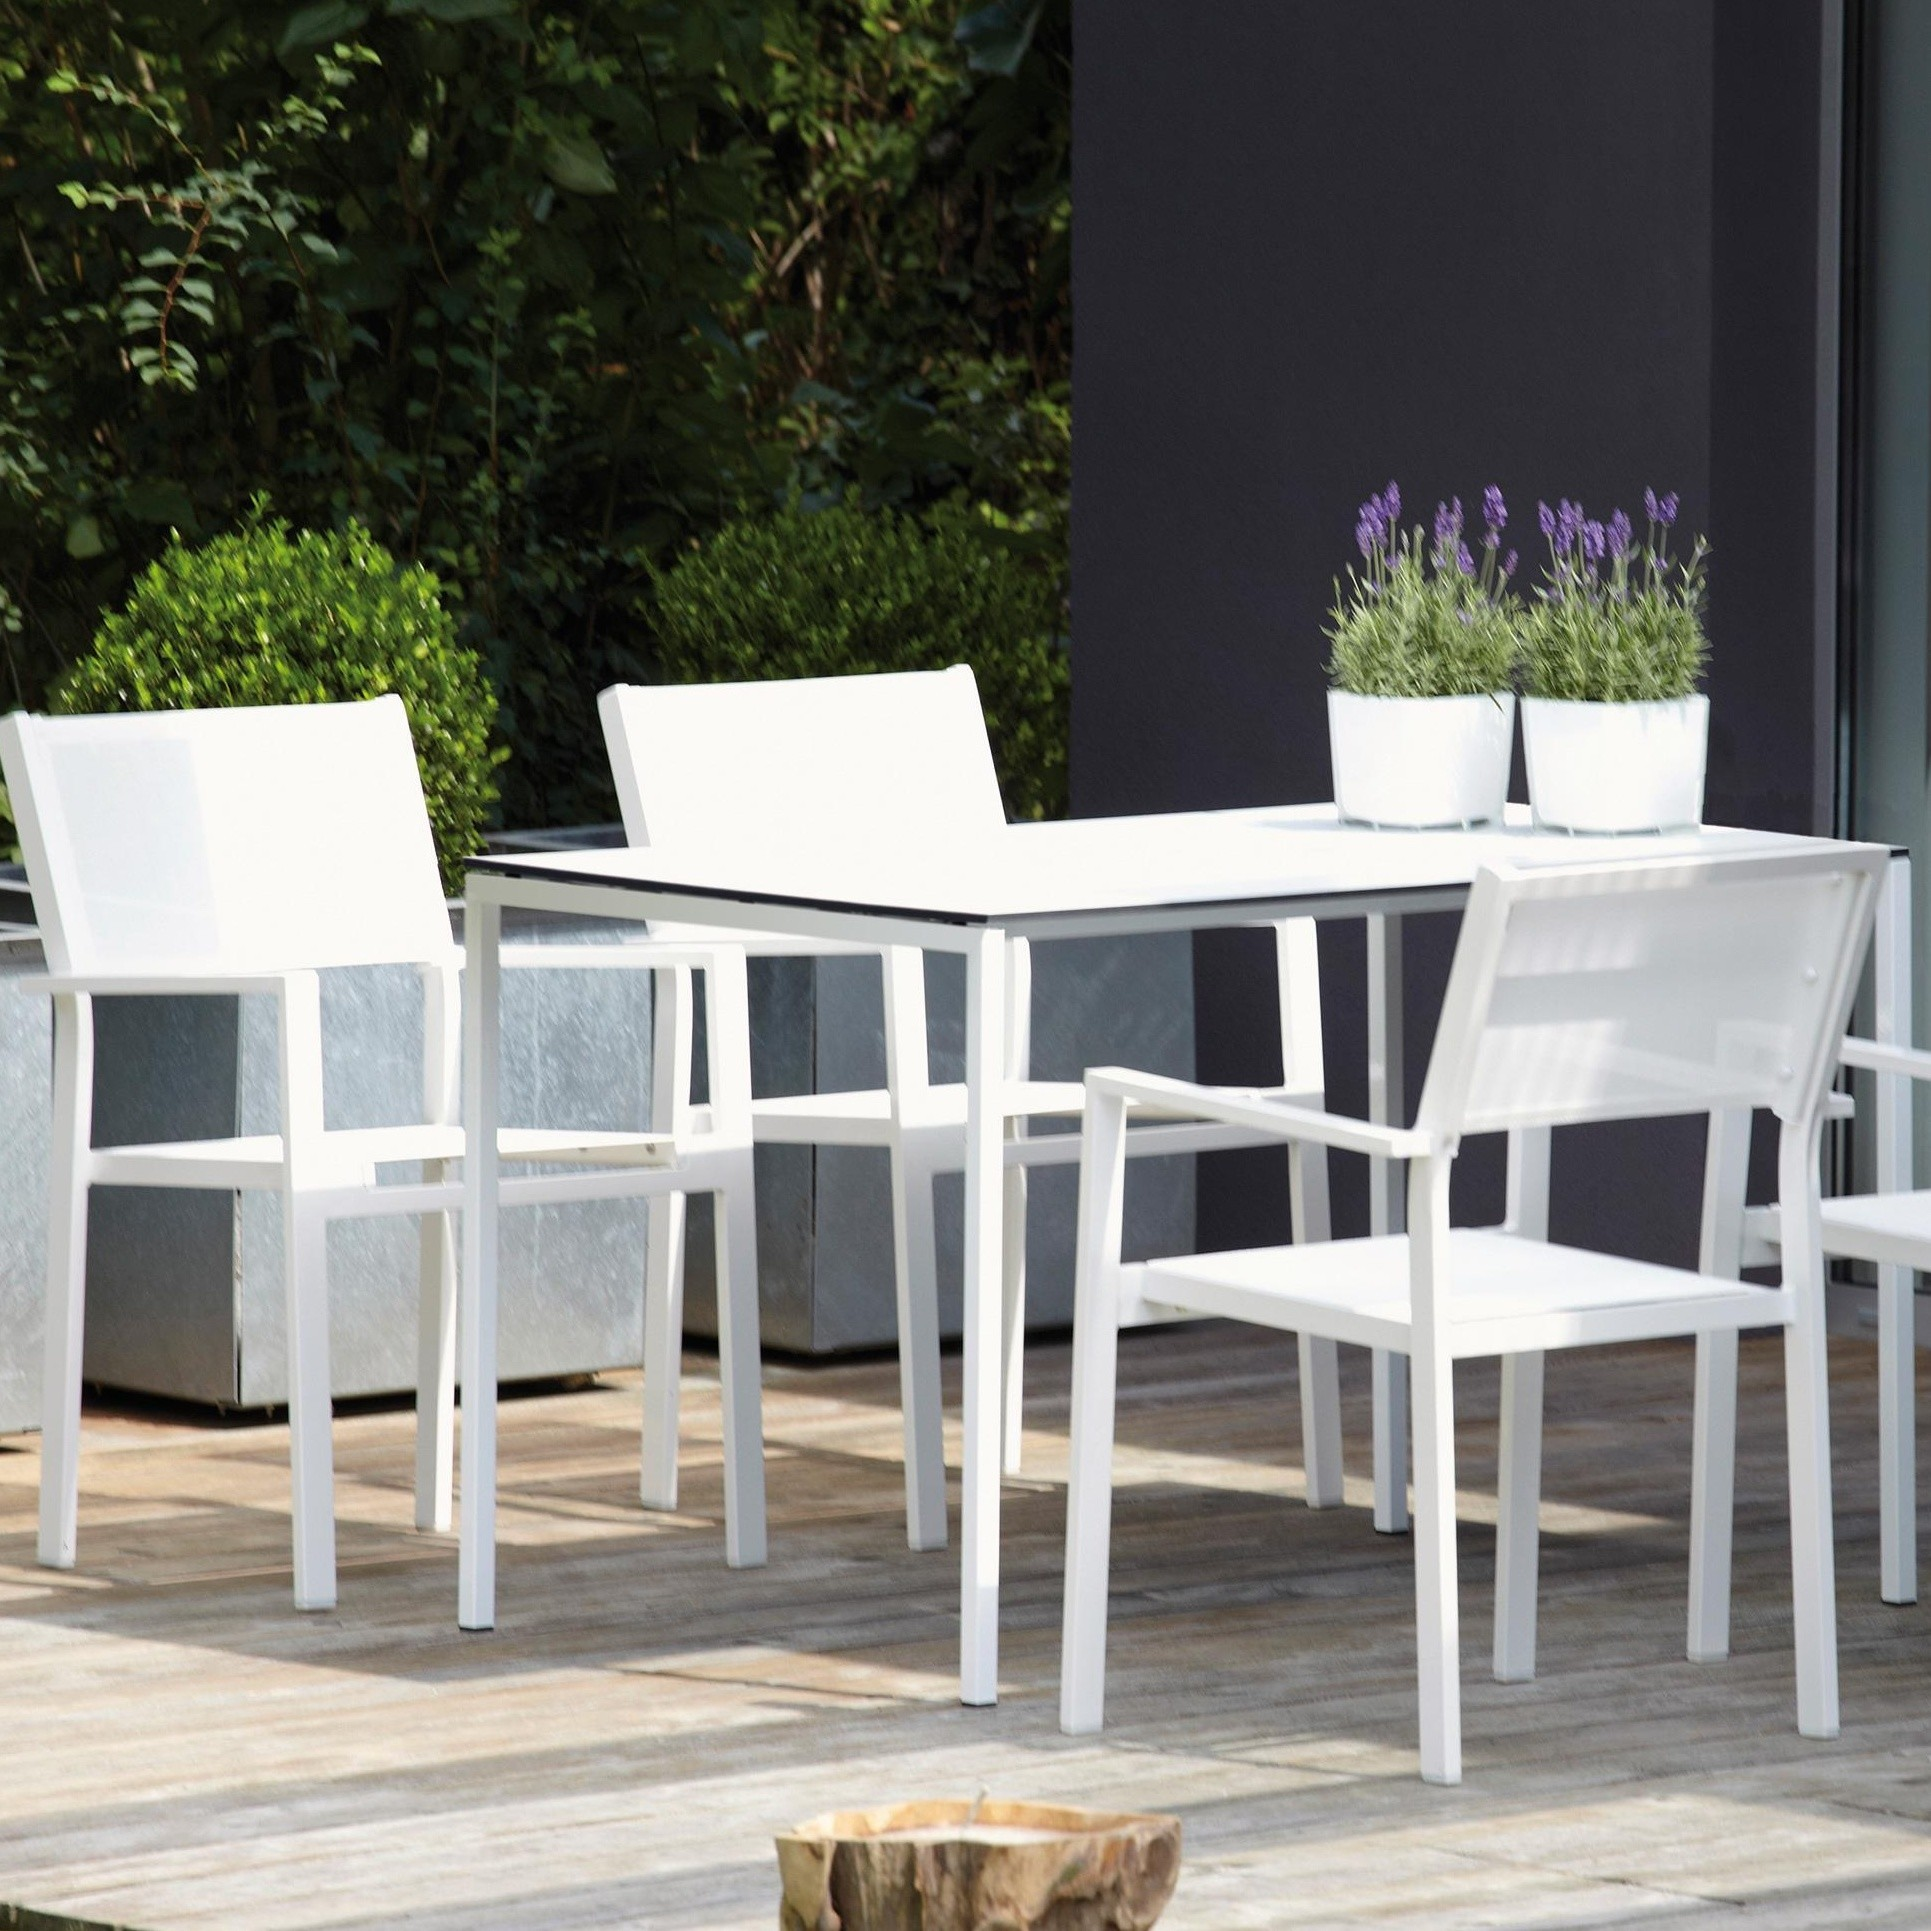 Jan Kurtz Cubic Jan Kurtz Cubic Garden Armchair Set Of 4 | Ambientedirect